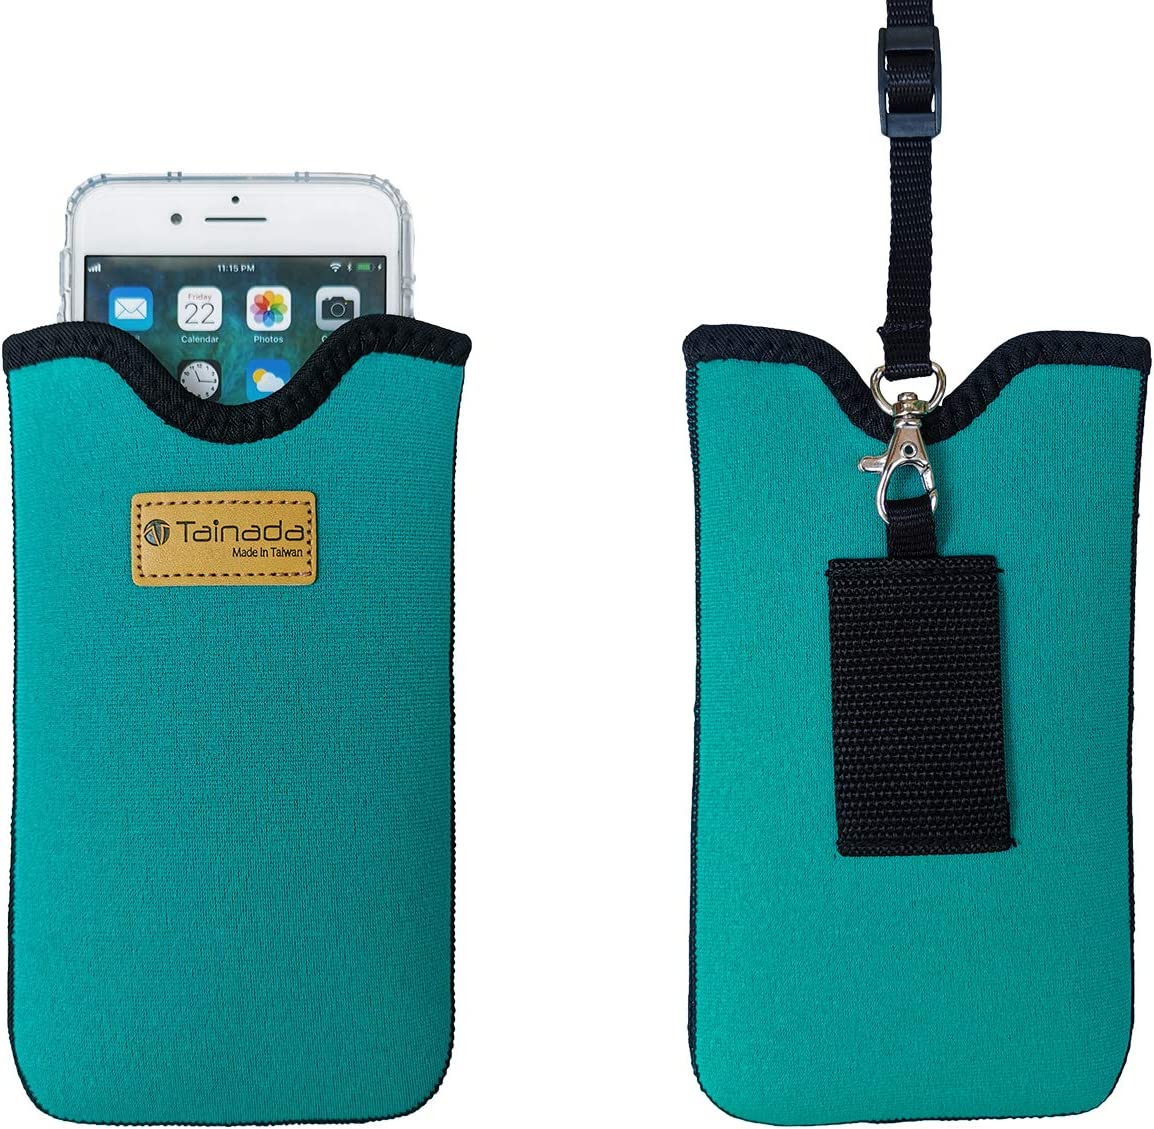 Tainada Men Women Neoprene Shockproof Phone Sleeve Pouch Carrying Case with Neck Lanyard, Belt Loop Holster for iPhone 13 / 12, 13 / 12 Pro Max, 11, Samsung S21+, A52, Google Pixel 5a 5G (Turquoise)